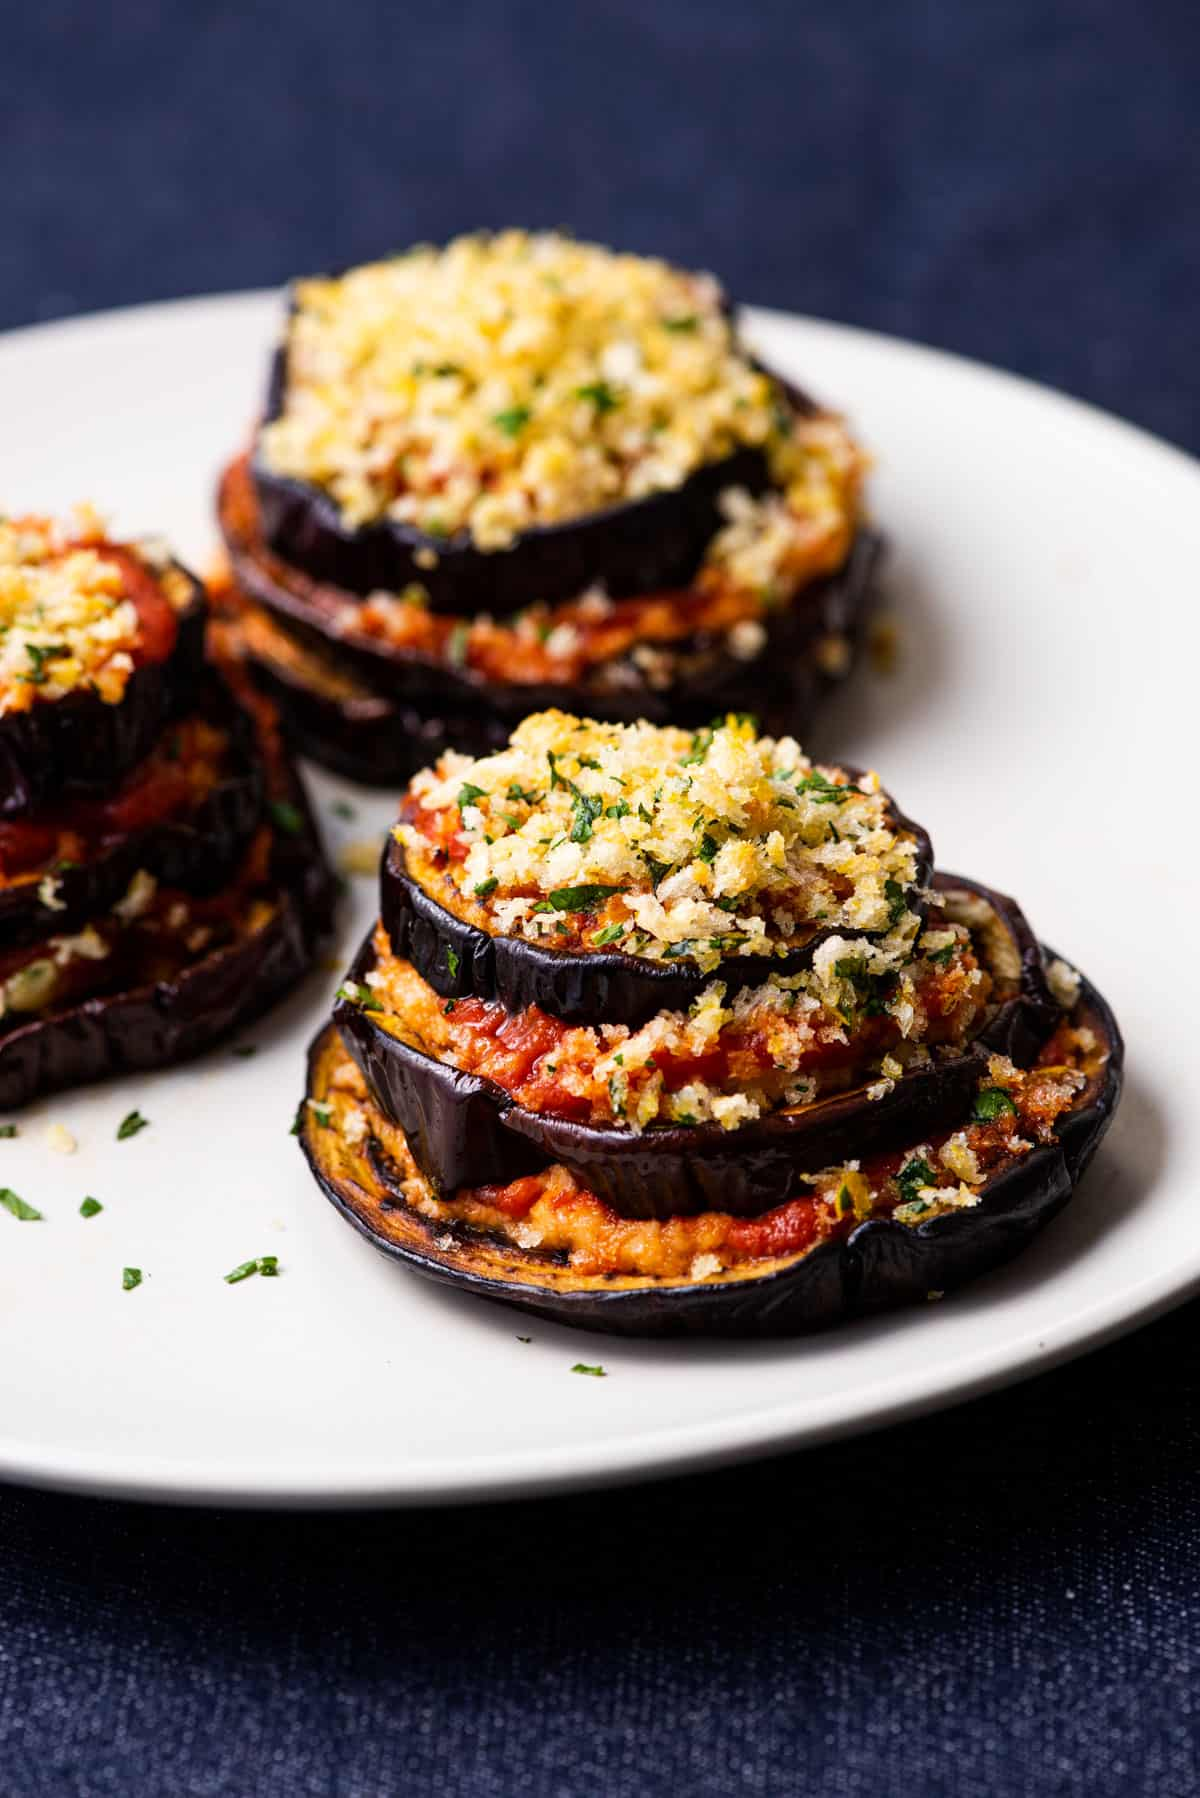 Vegan eggplant lasagna stacks with crunchy Panko topping, on a beige plate on a blue tablecloth.